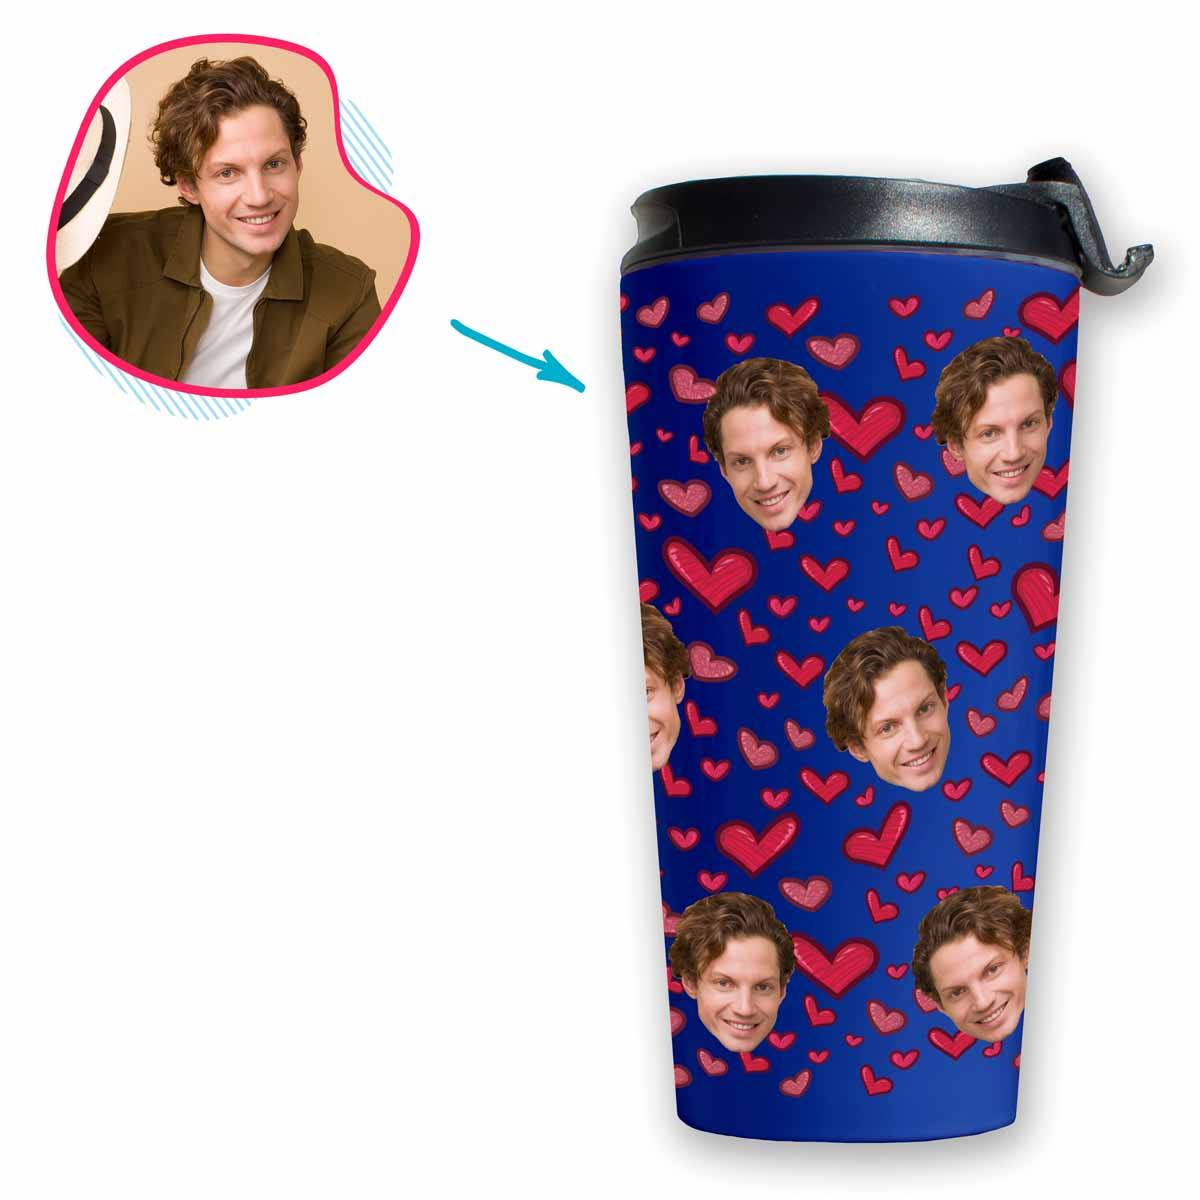 darkblue Heart travel mug personalized with photo of face printed on it